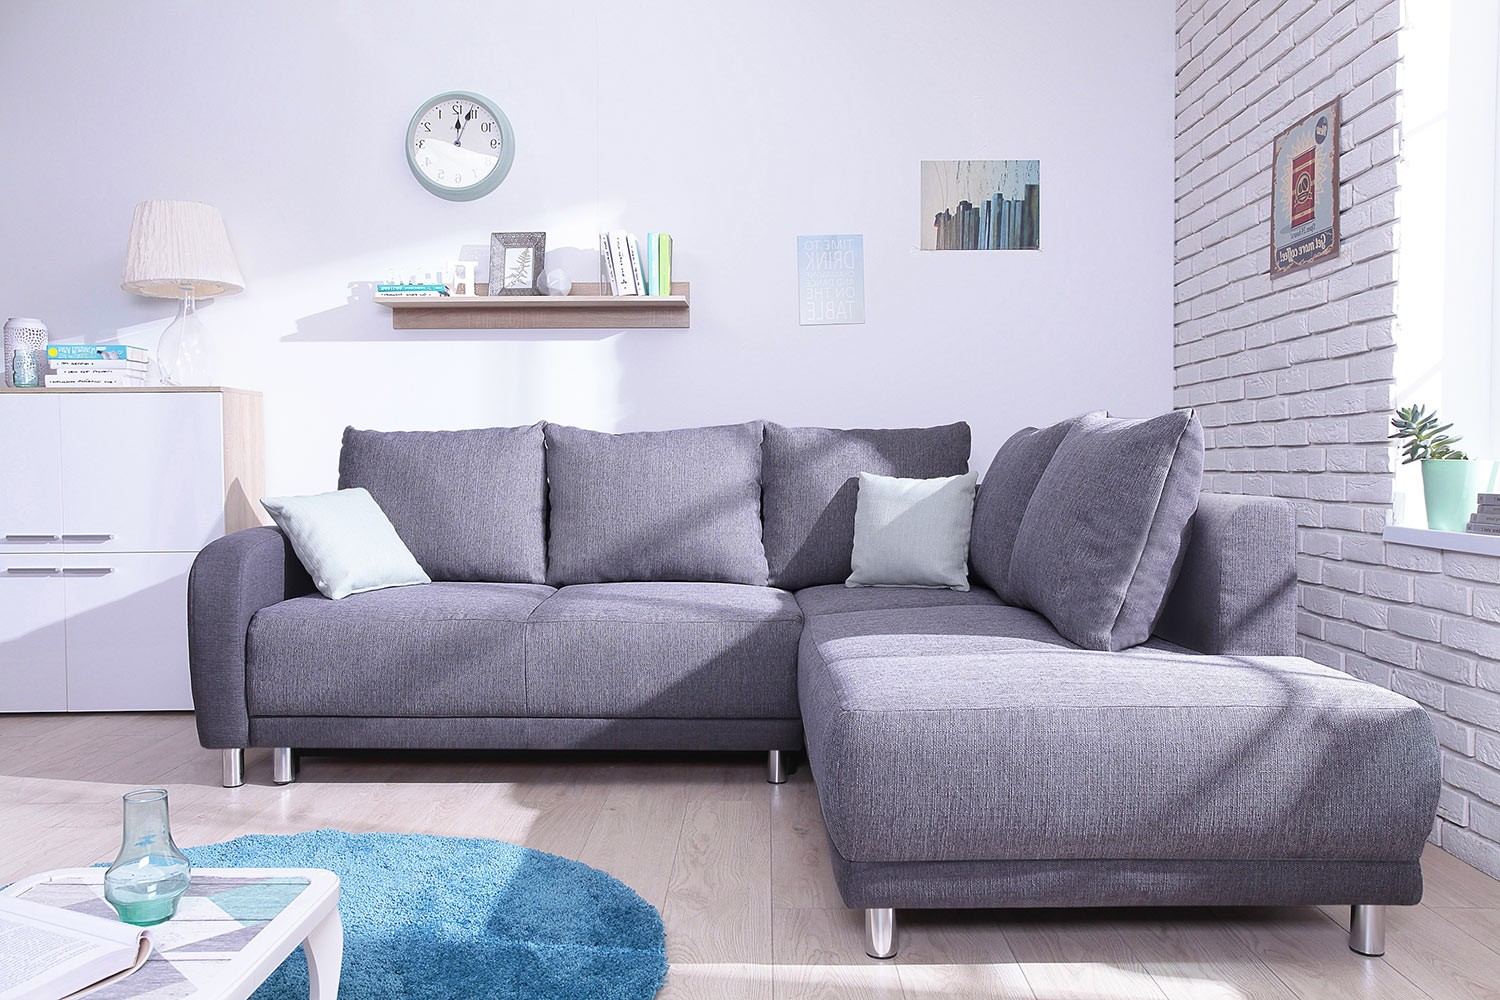 Canapé Convertible Scandinave Minty Grand Angle Droit Canapé Convertible Scandinave Bobochic Bicolore Gris Anthracite